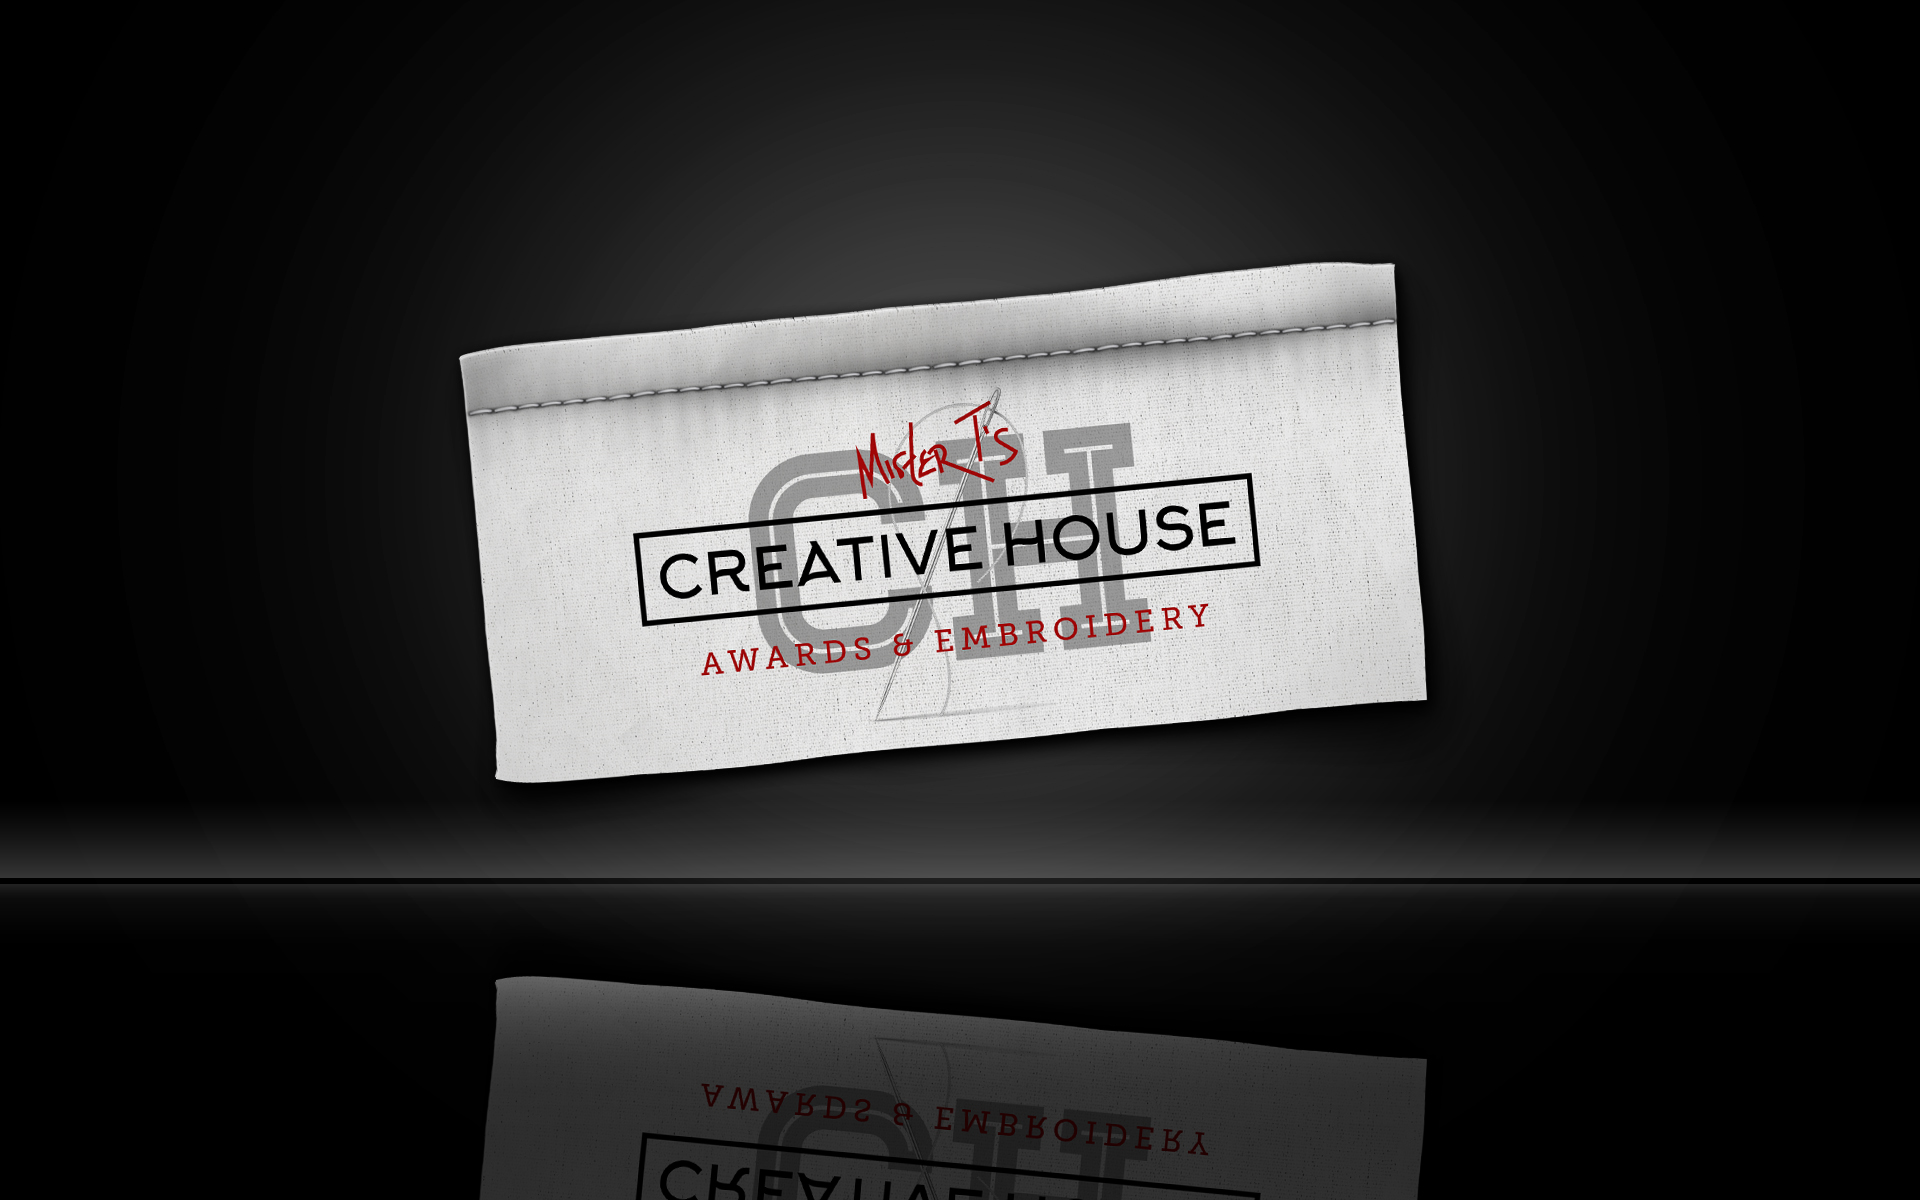 Mister Mr Ts Creative House Awards and Embroidery Mt Vernon Wa New Logo by Graham Hnedak Brand G Creative 01 DEC 2016.jpg